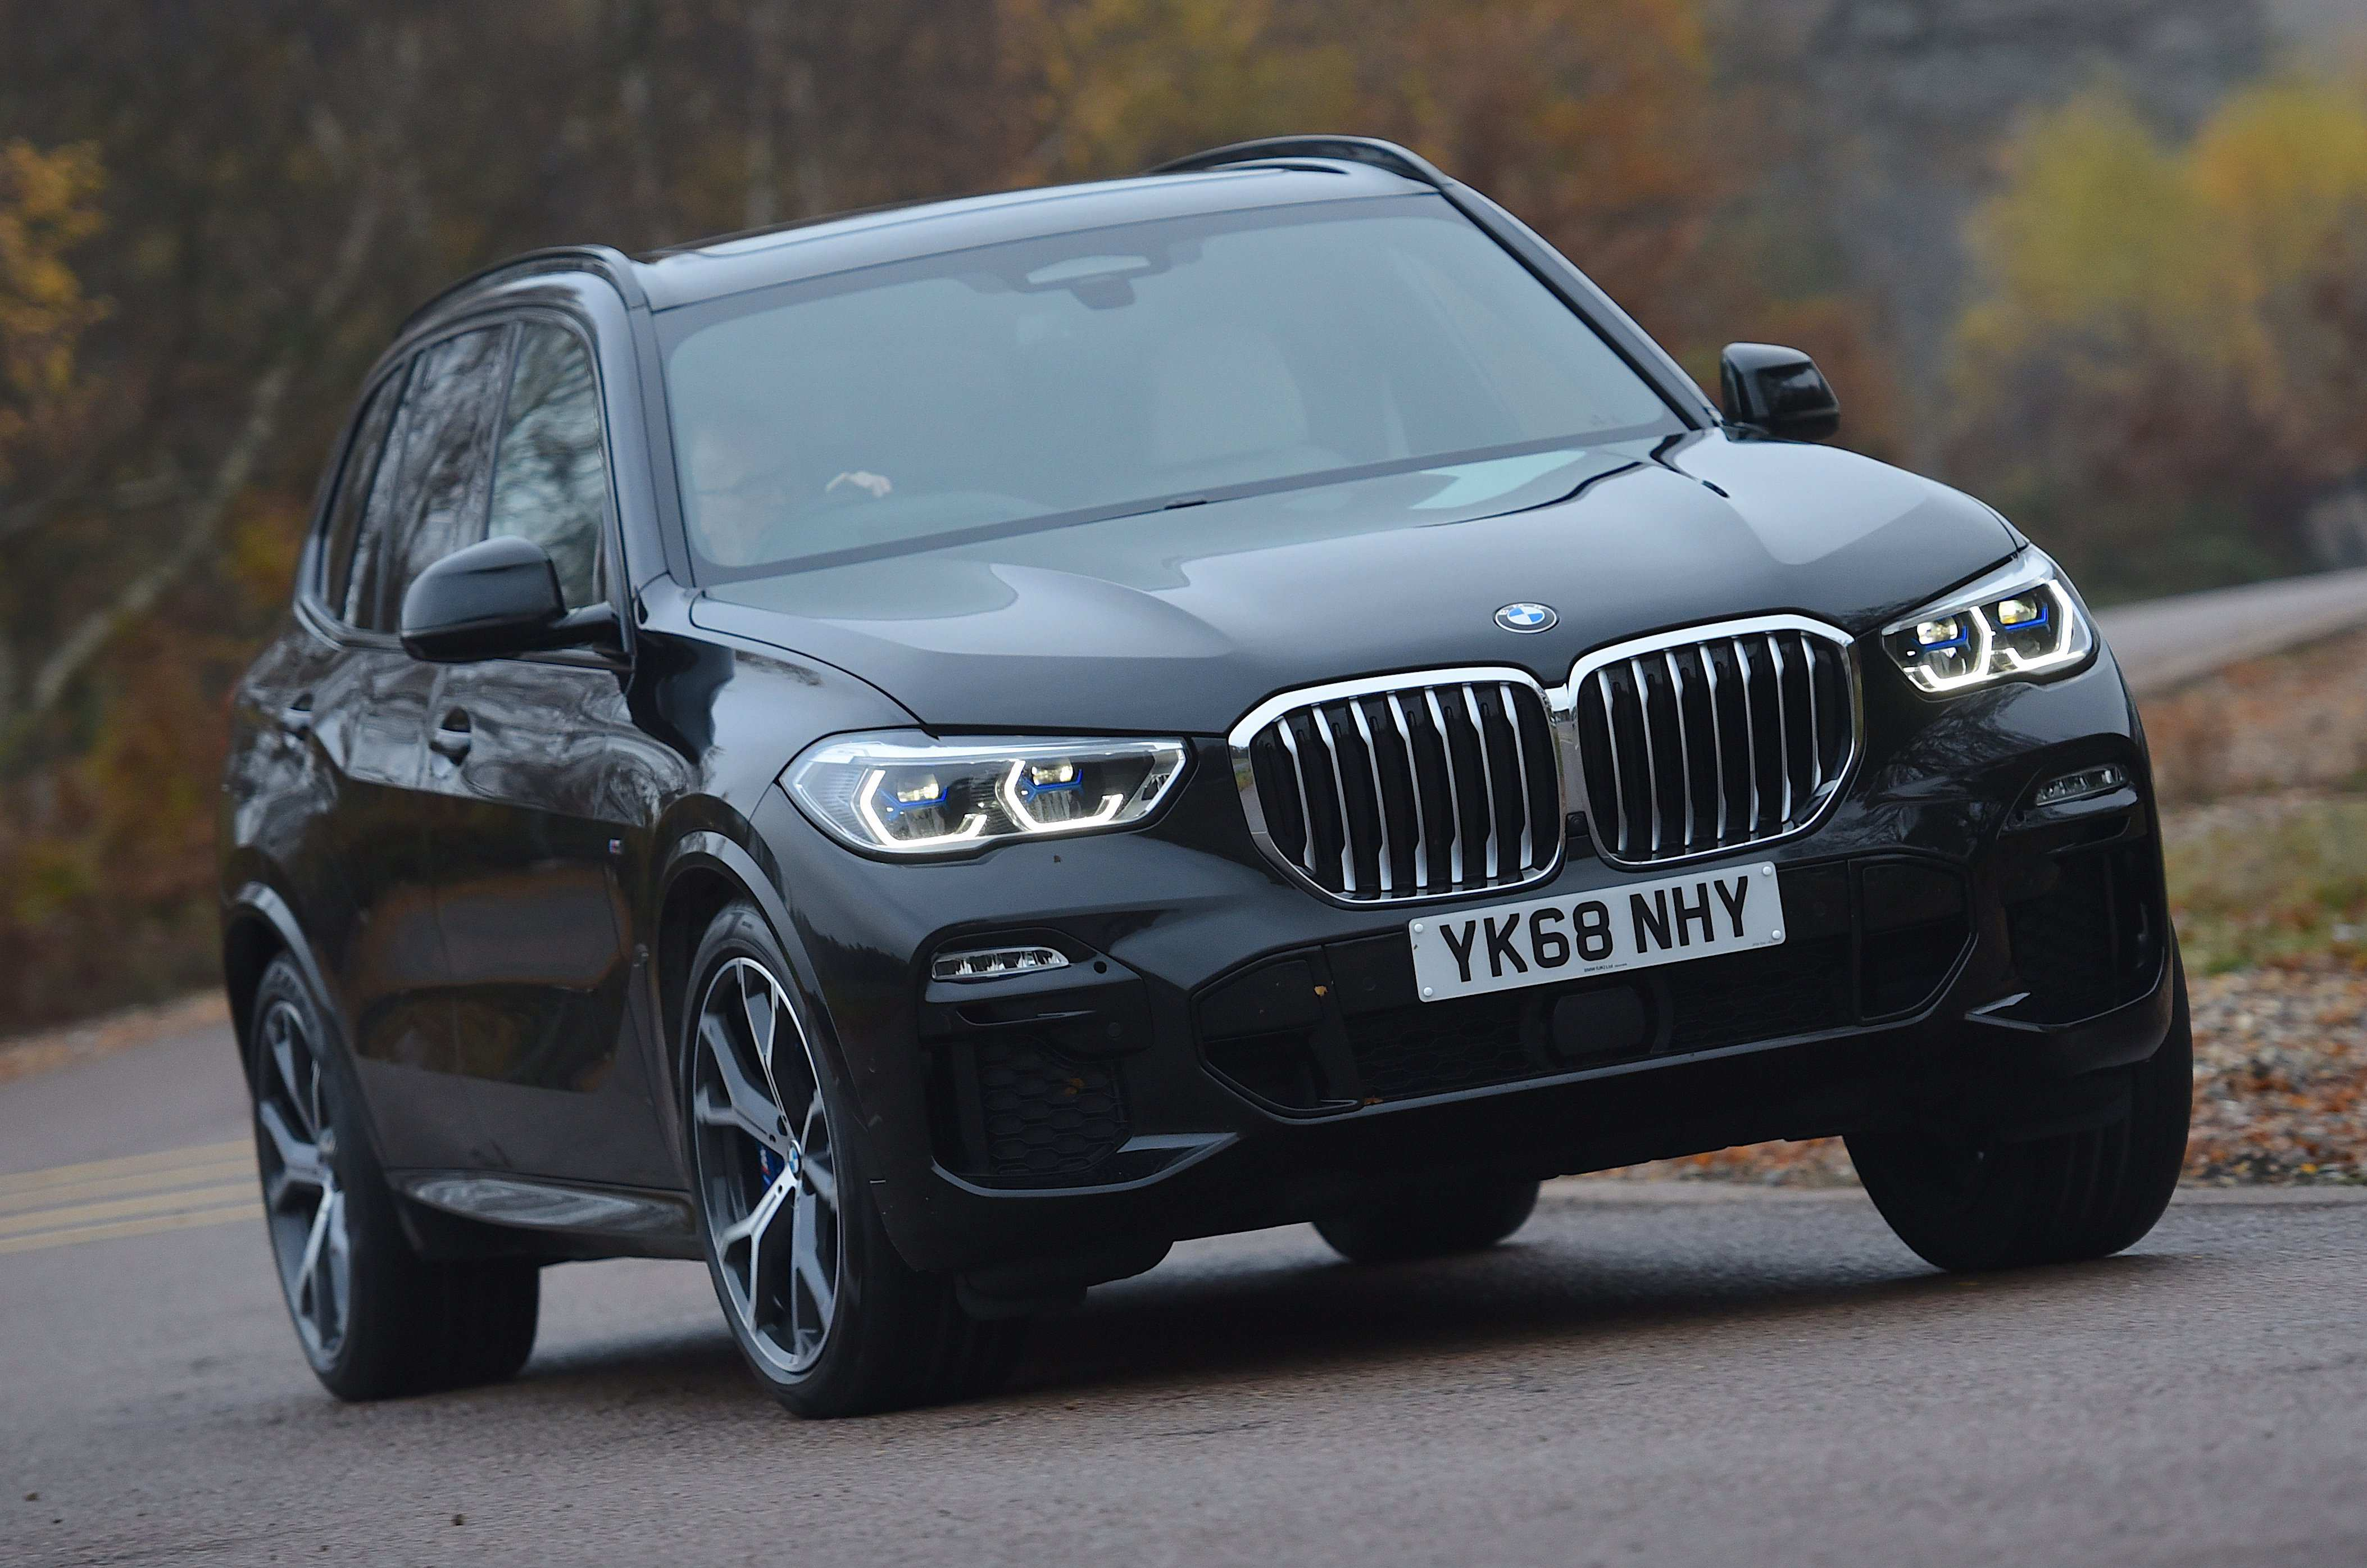 94 New When Is The Bmw X5 2019 Release Date Engine New Review by When Is The Bmw X5 2019 Release Date Engine